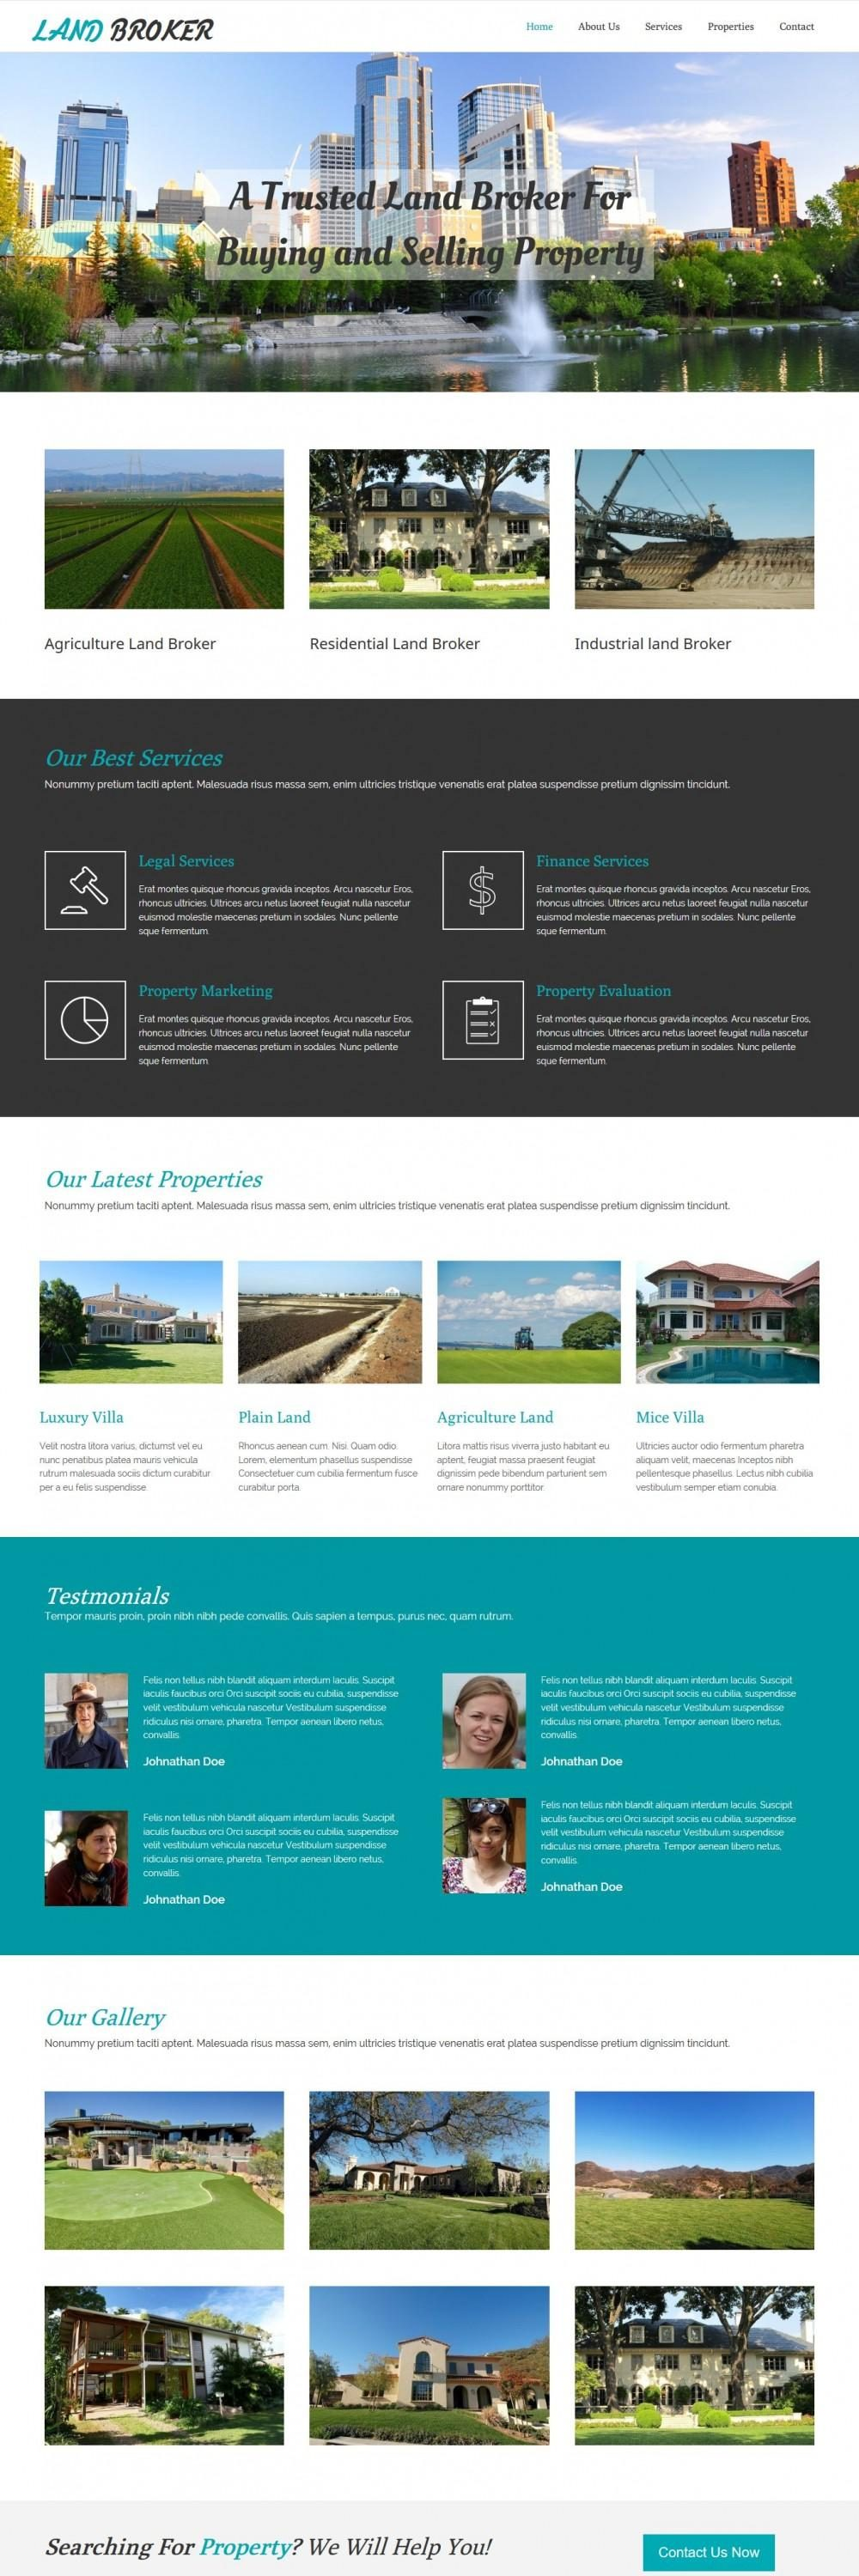 Land Broker - Real Estate/Broker Agency WordPress Theme